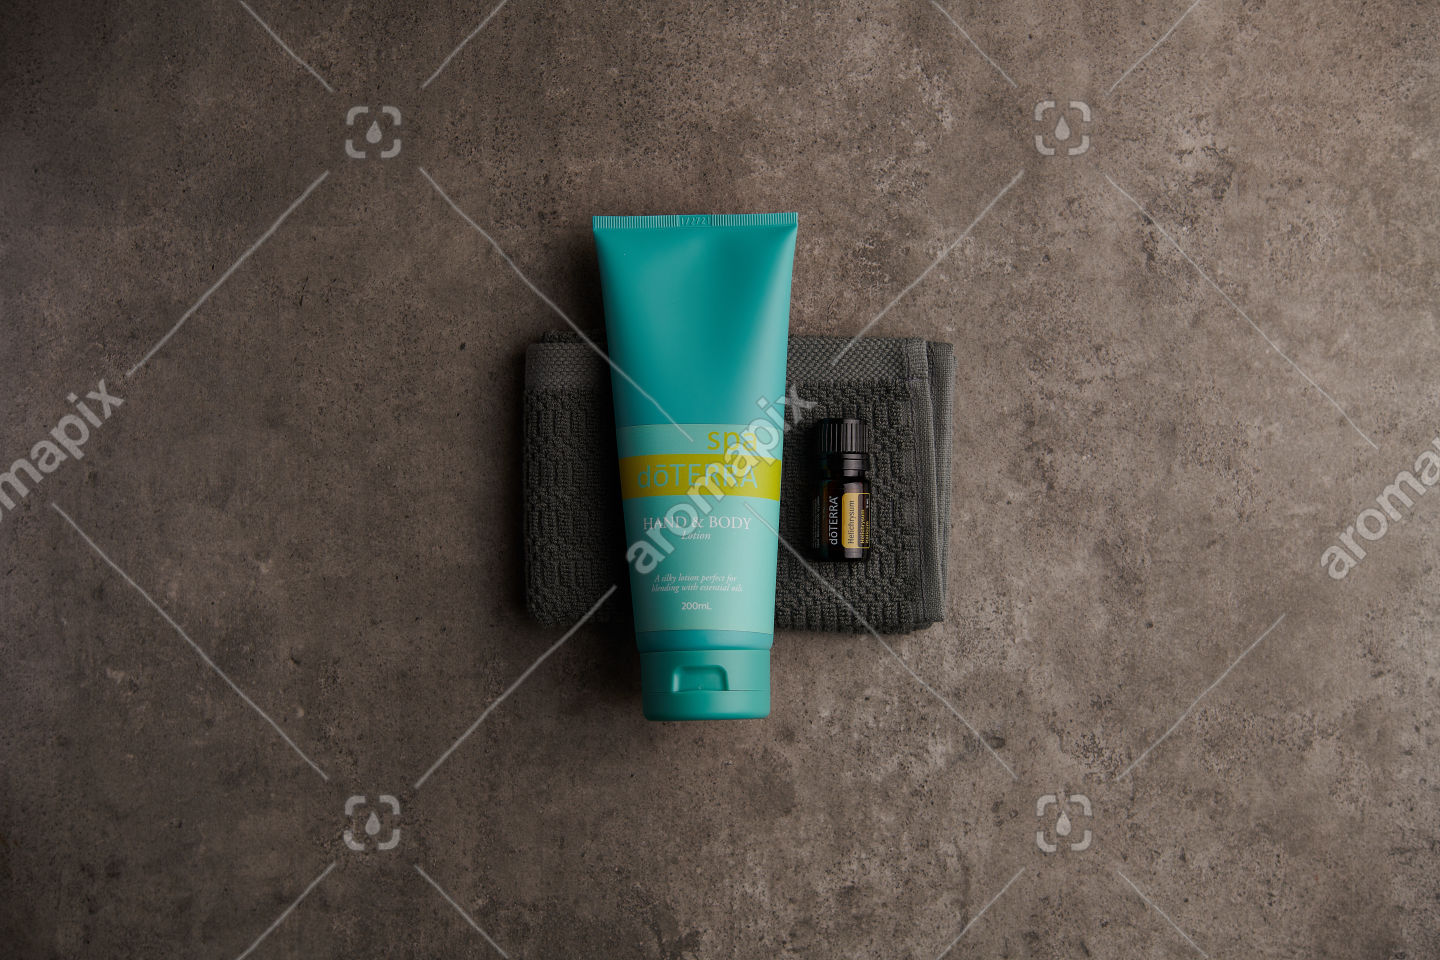 doTERRA Spa Hand and Body Lotion and Helichrysum essential oil on stone